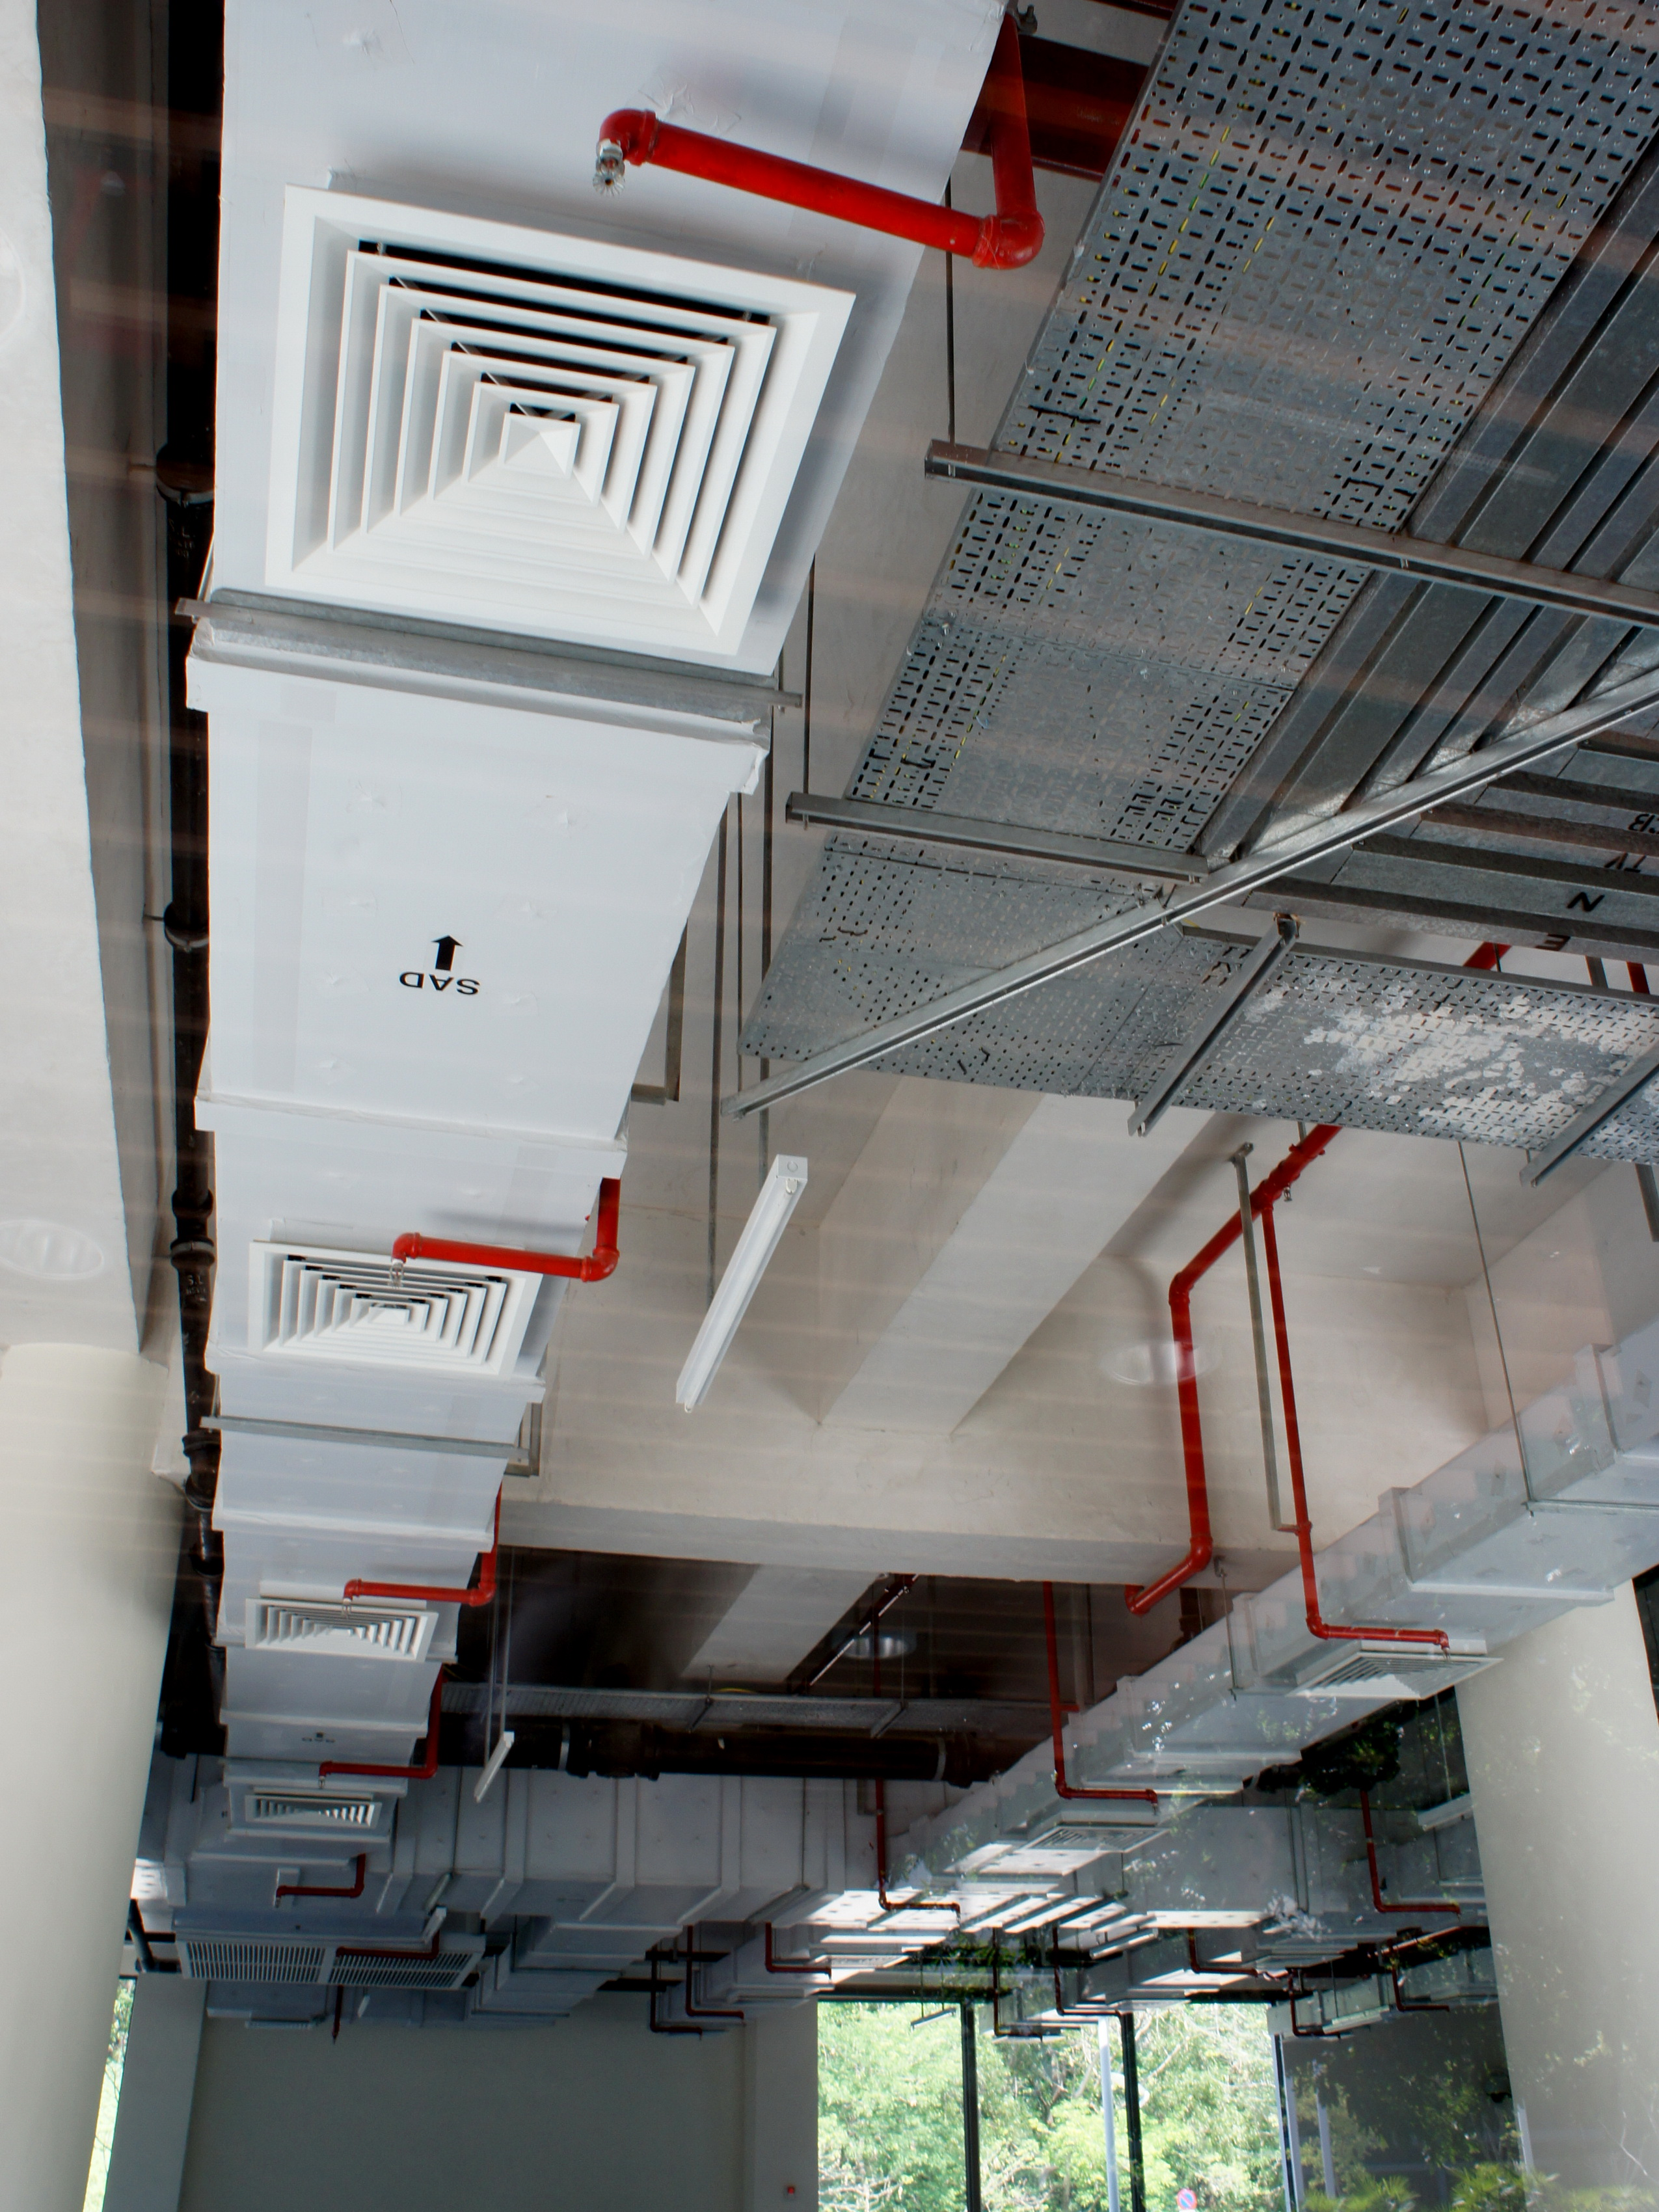 An Air Conditioning System